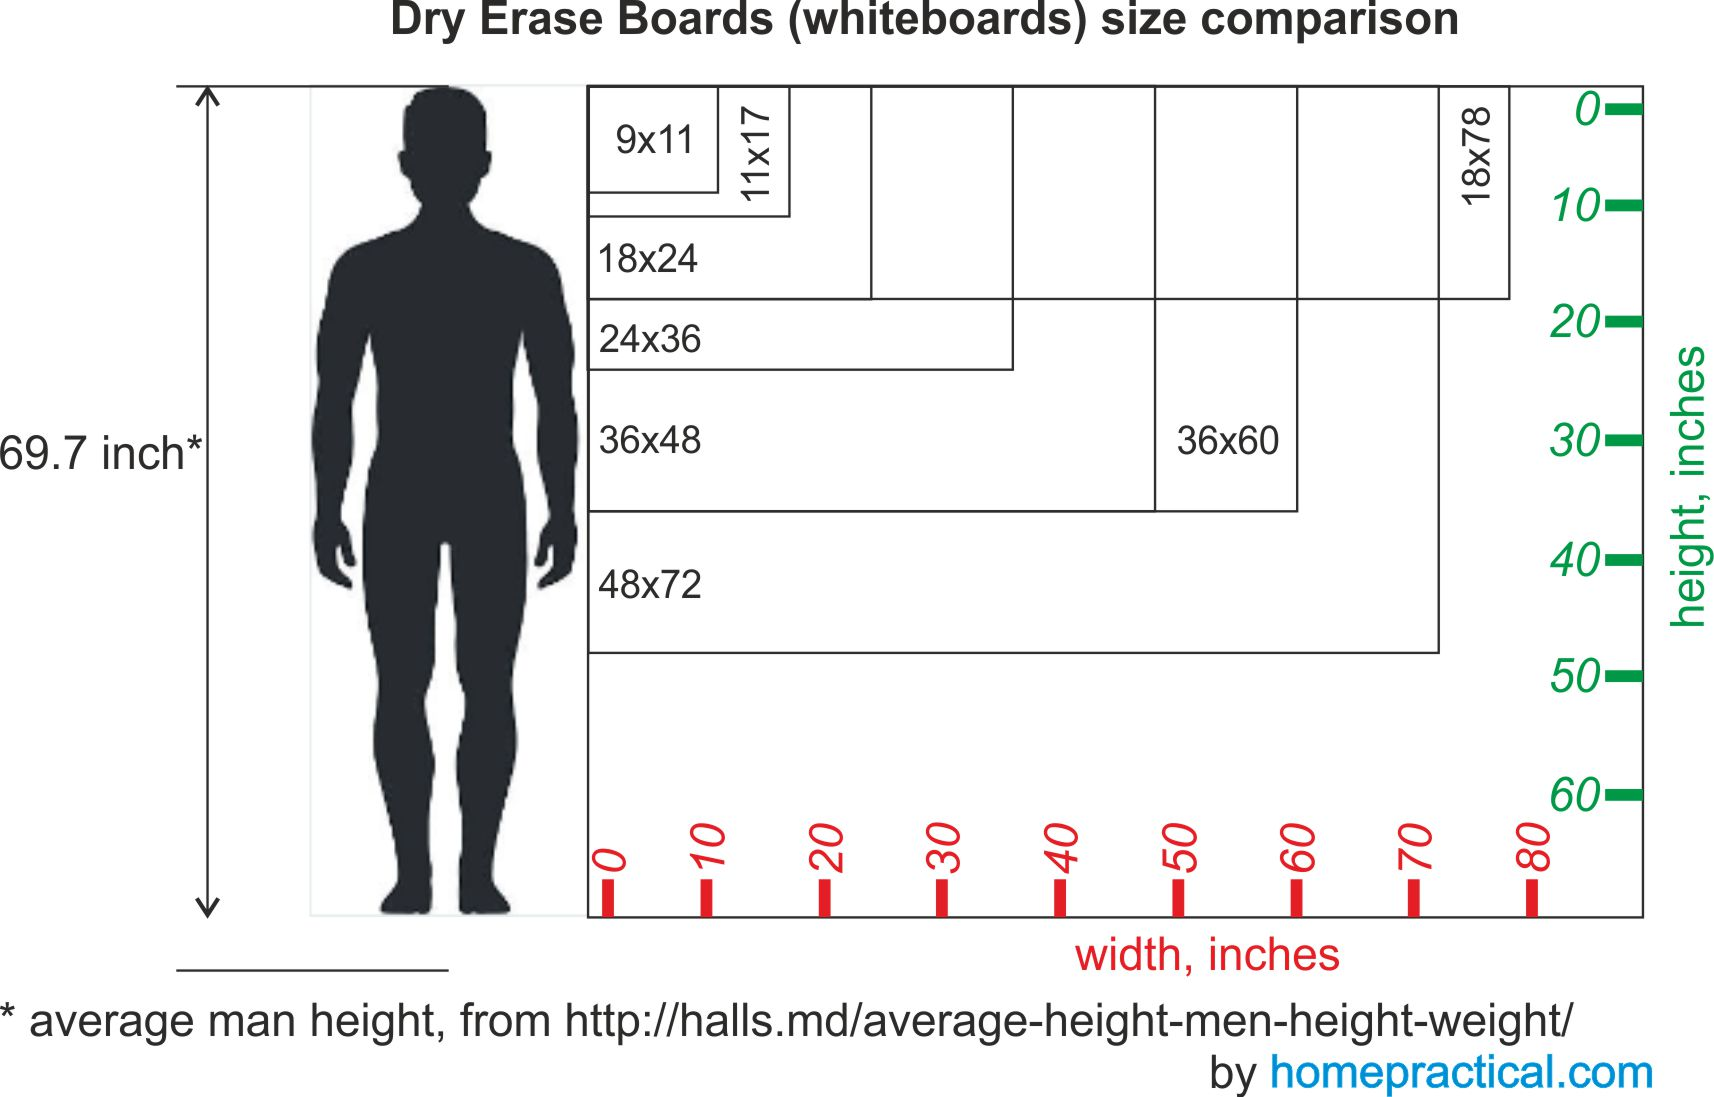 dry erase board sizes (by homepractical.com)